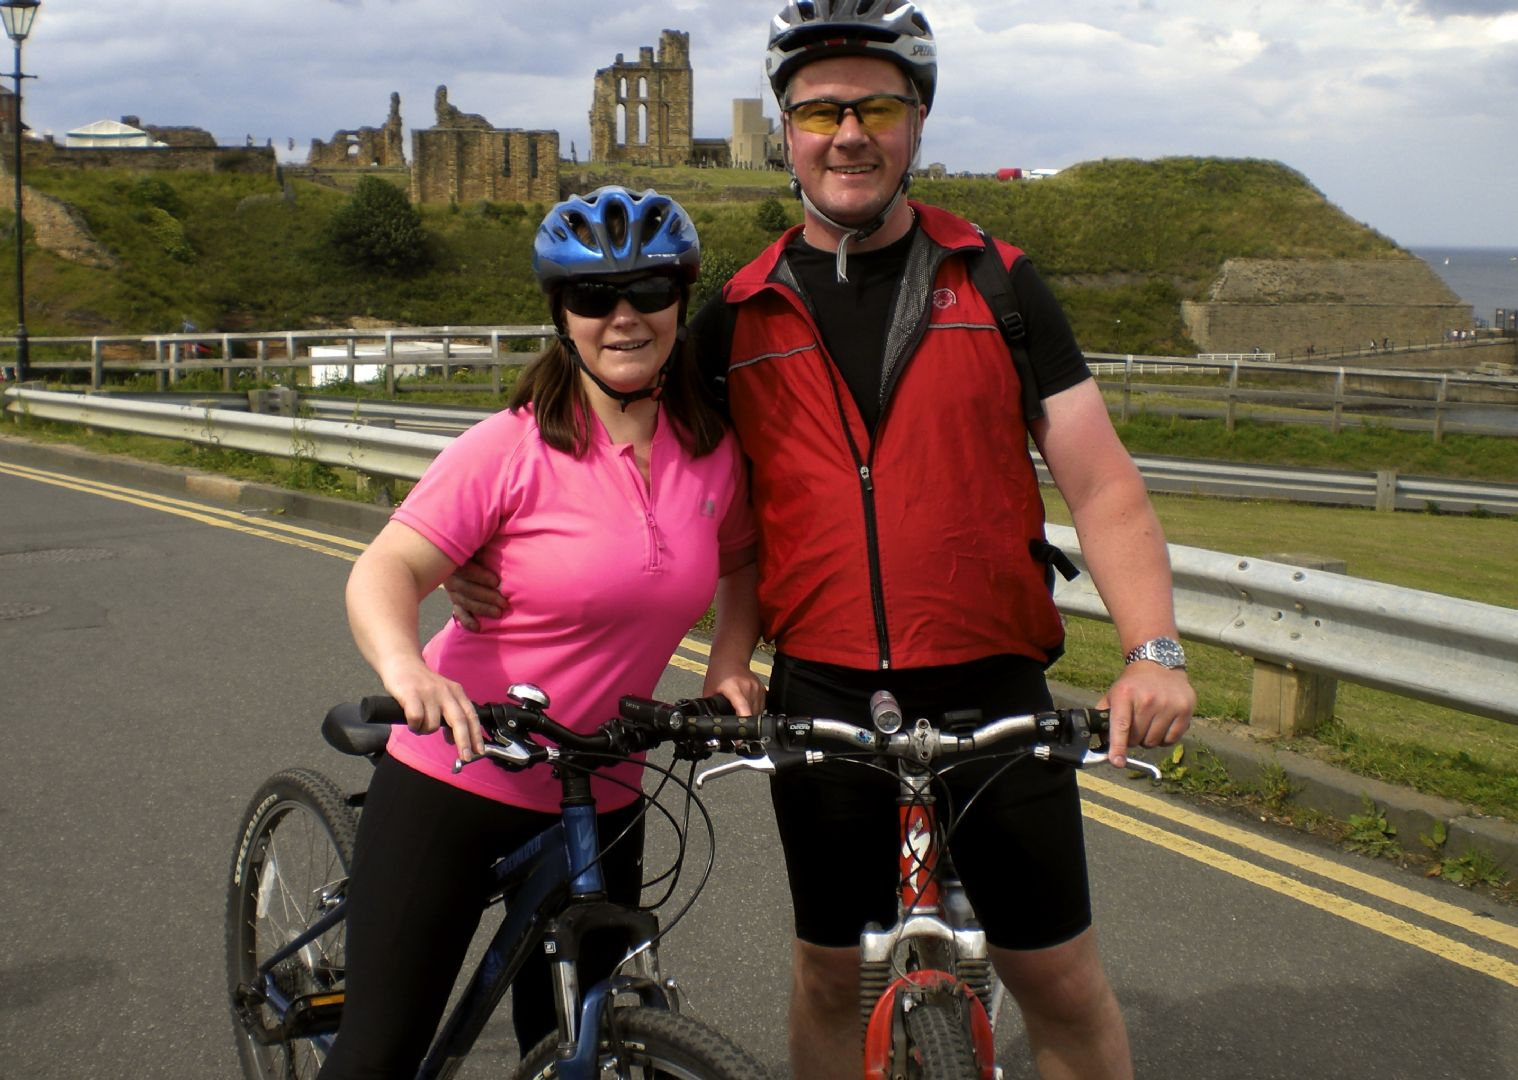 4904065250_e117074206_o.jpg - UK - C2C - Coast to Coast 3 Days Cycling - Self-Guided Leisure Cycling Holiday - Leisure Cycling